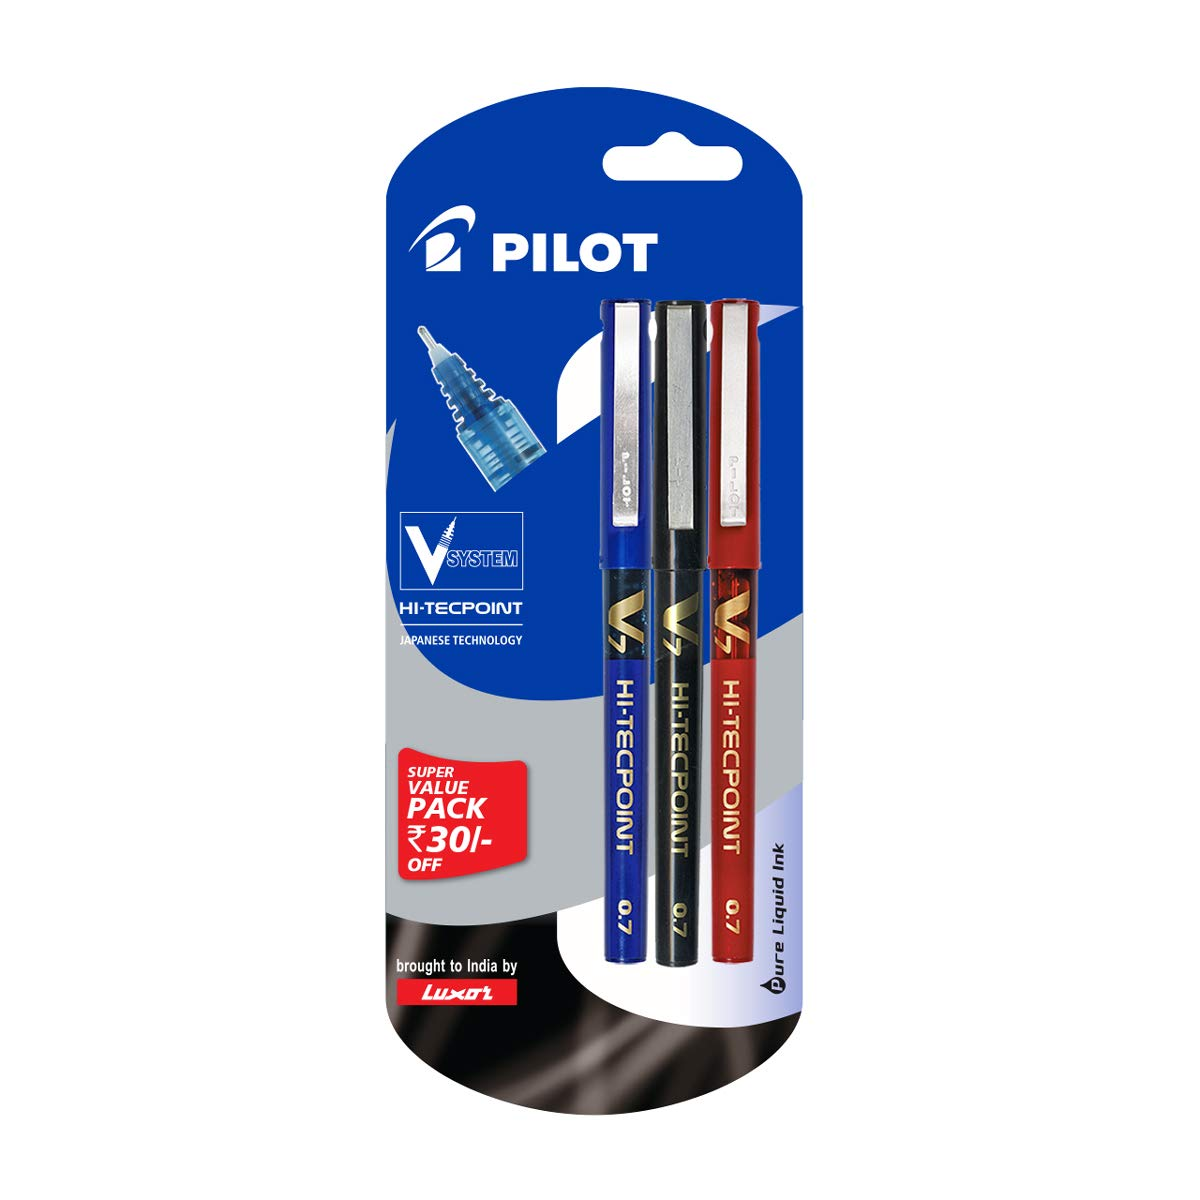 Pilot V7 Liquid Ink Roller Ball Pen (1 Blue + 1 Black + 1 Red) product image